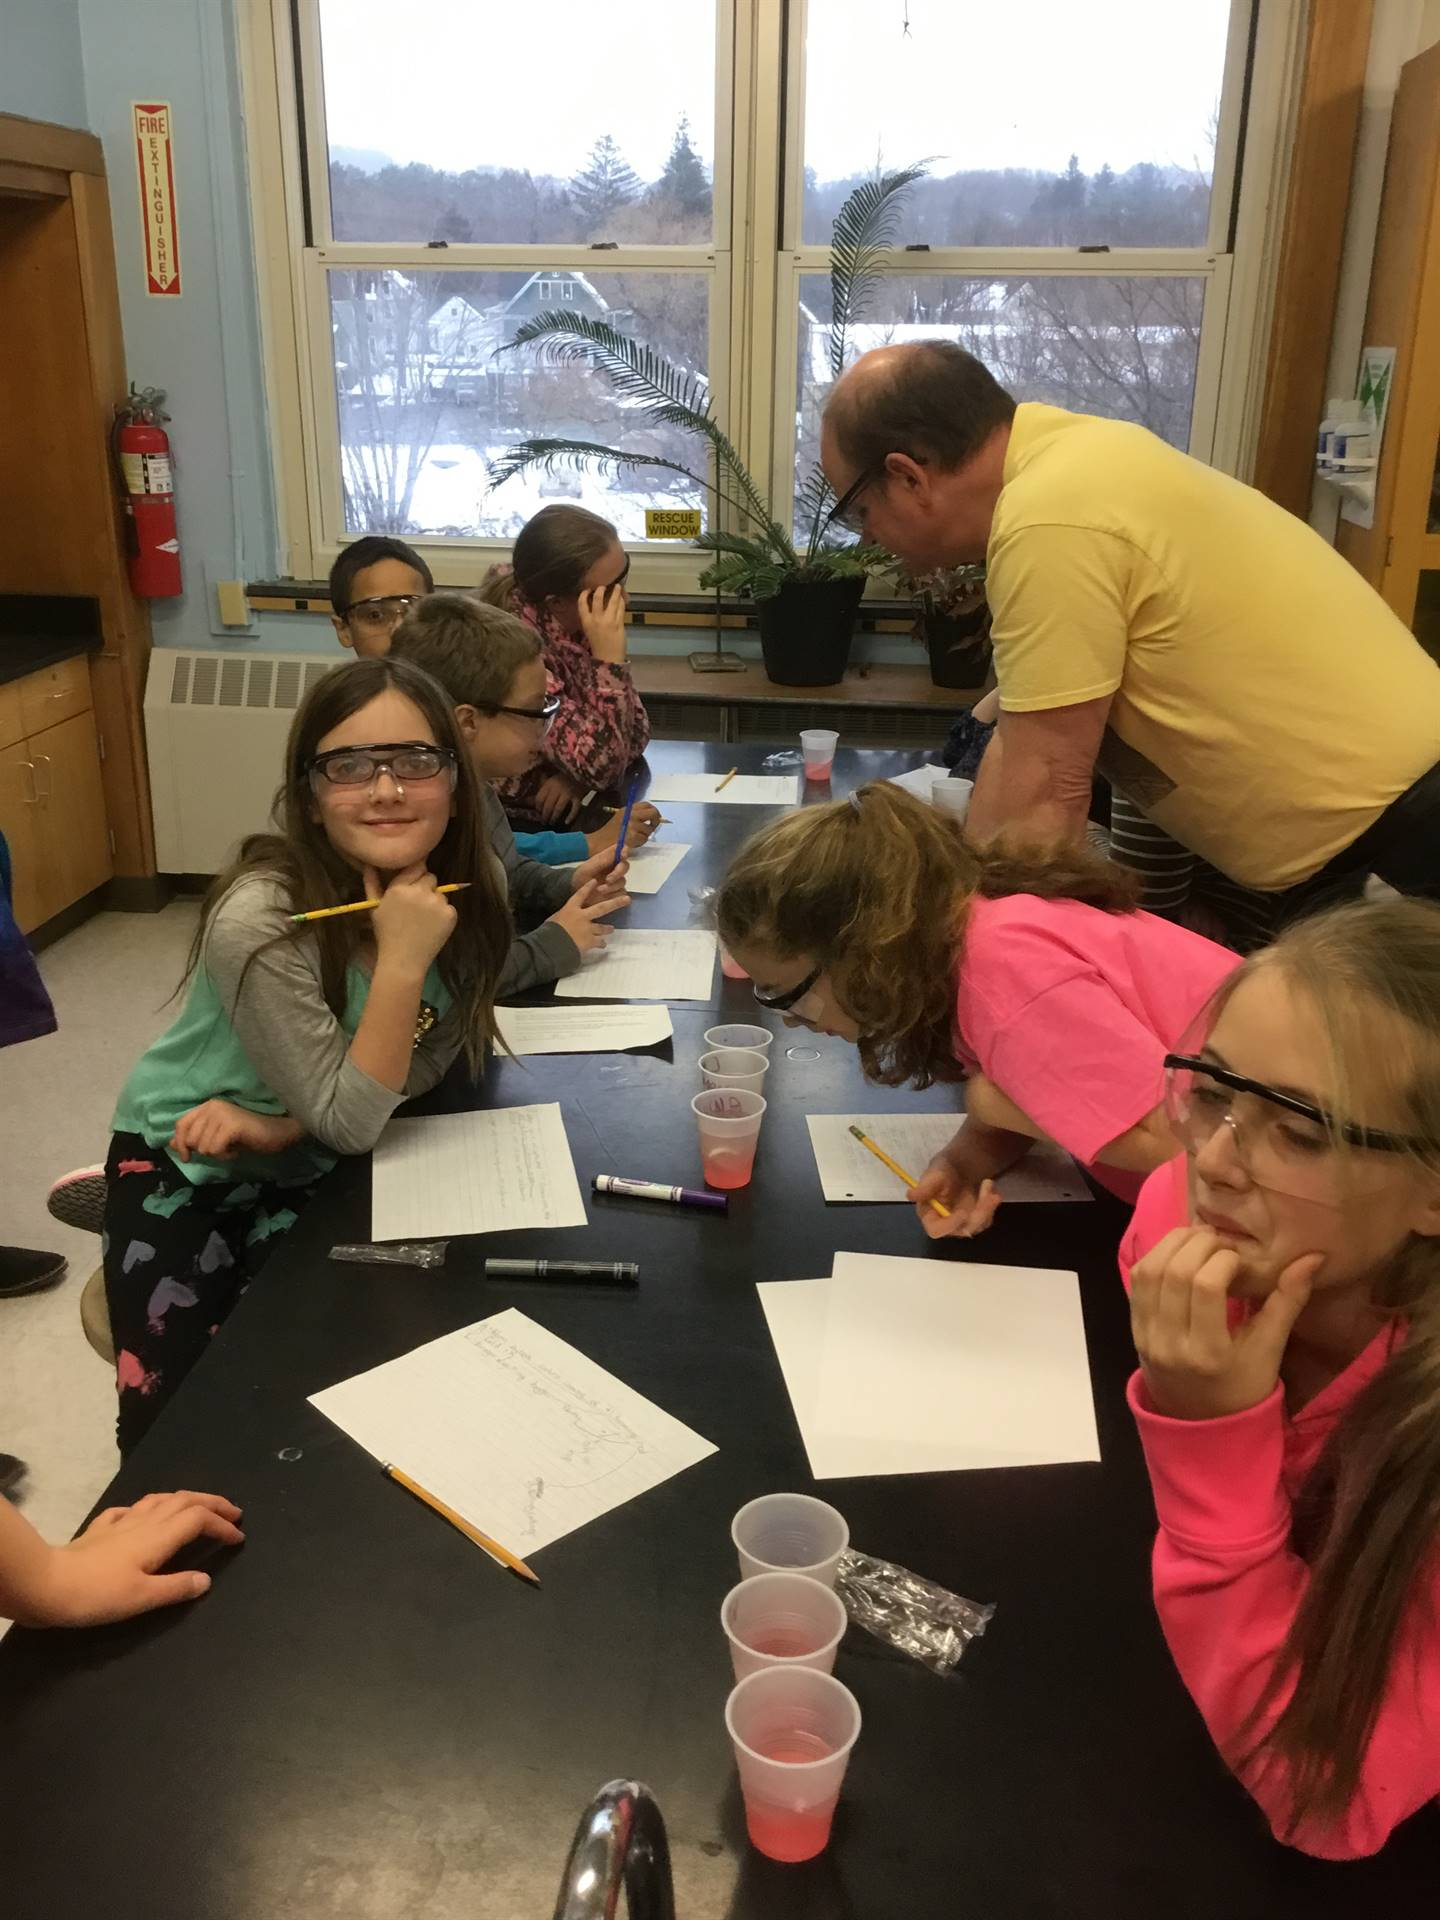 Mr. Champlin helps students with candy cane experiment